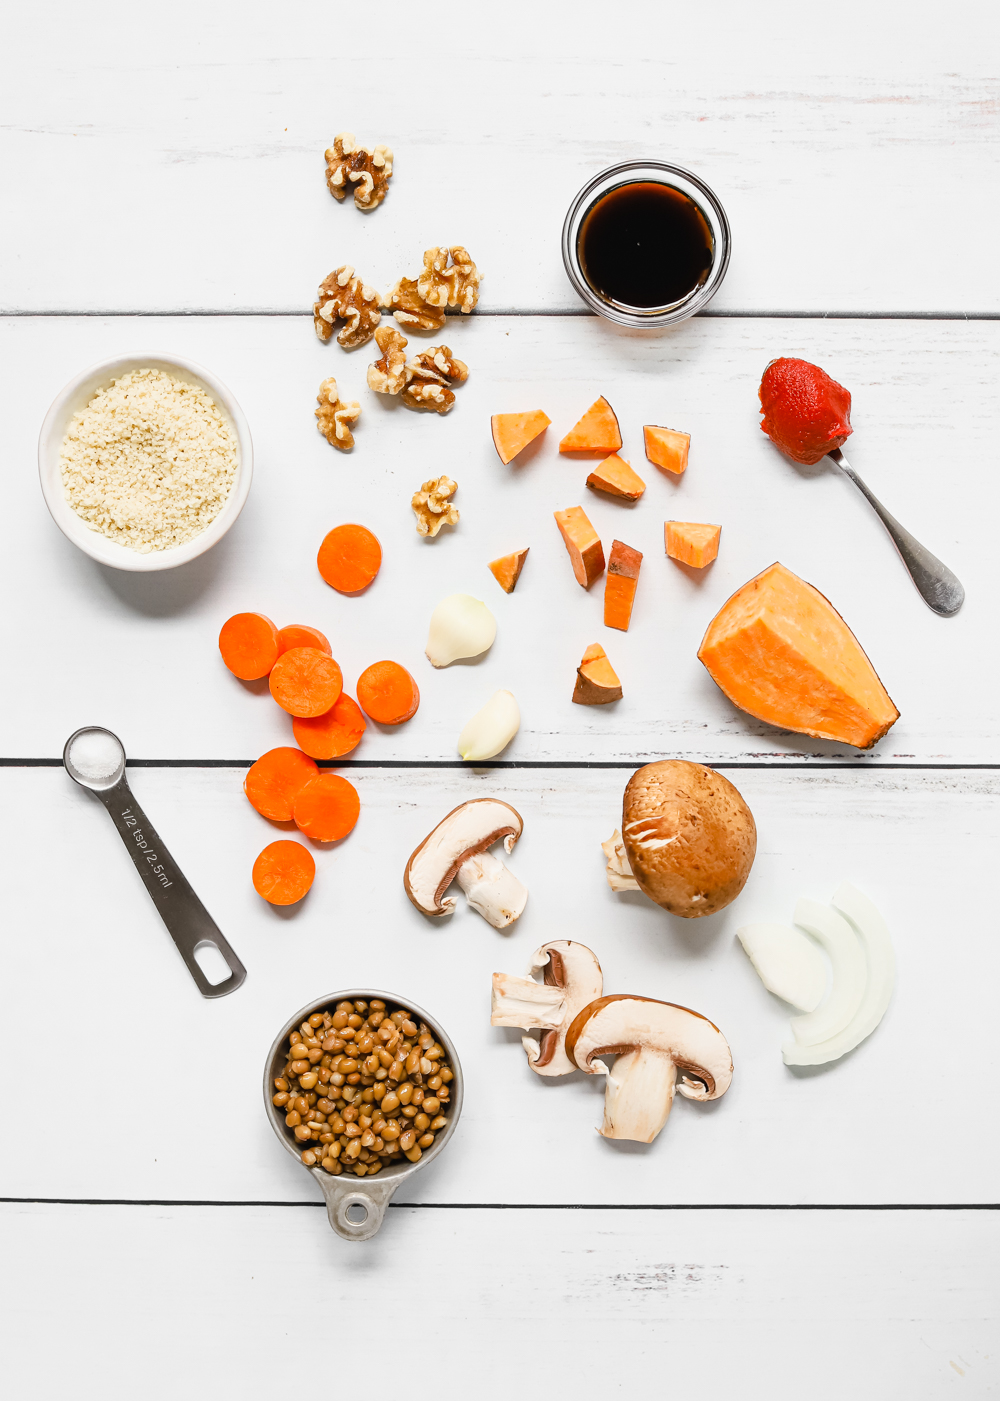 Ingredients to make vegan lentil meatloaf: lentils, mushrooms, sweet potato, carrots, onions, garlic, walnuts, tomato paste, dried thyme, dried rosemary, salt, vegan worcestershire sauce, and breadcrumbs.